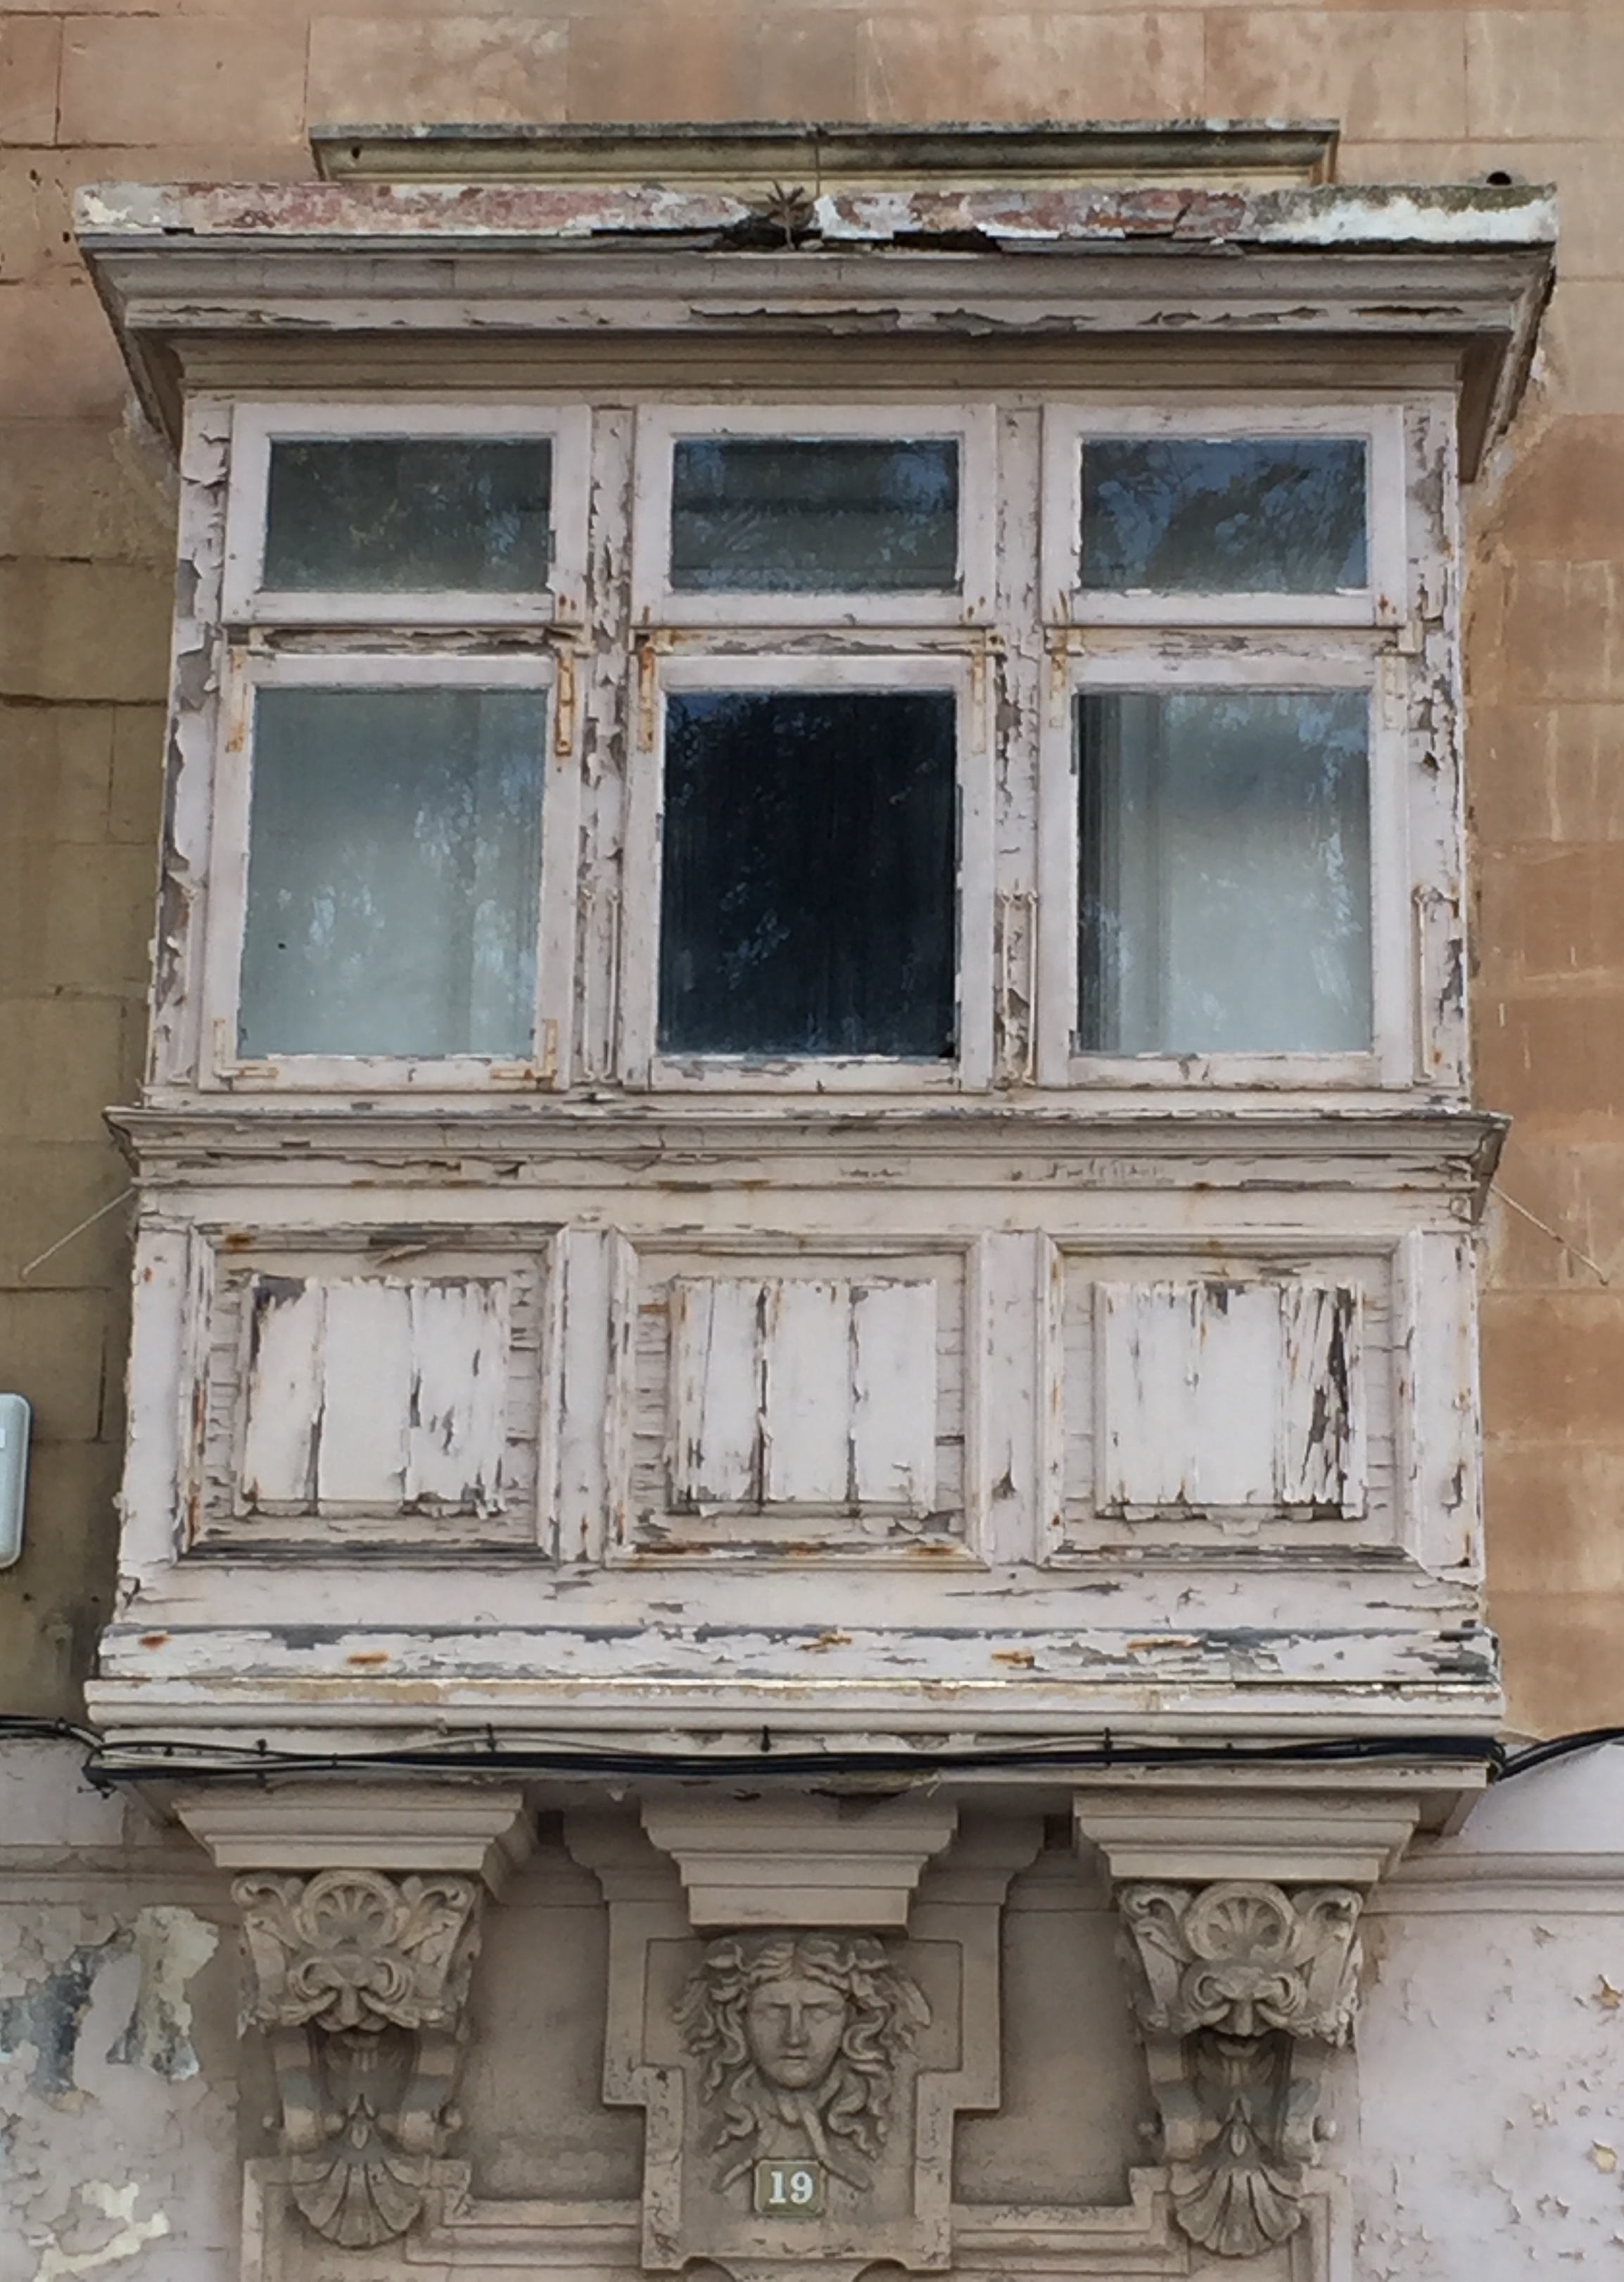 Balconies are a key feature of Maltese buildings